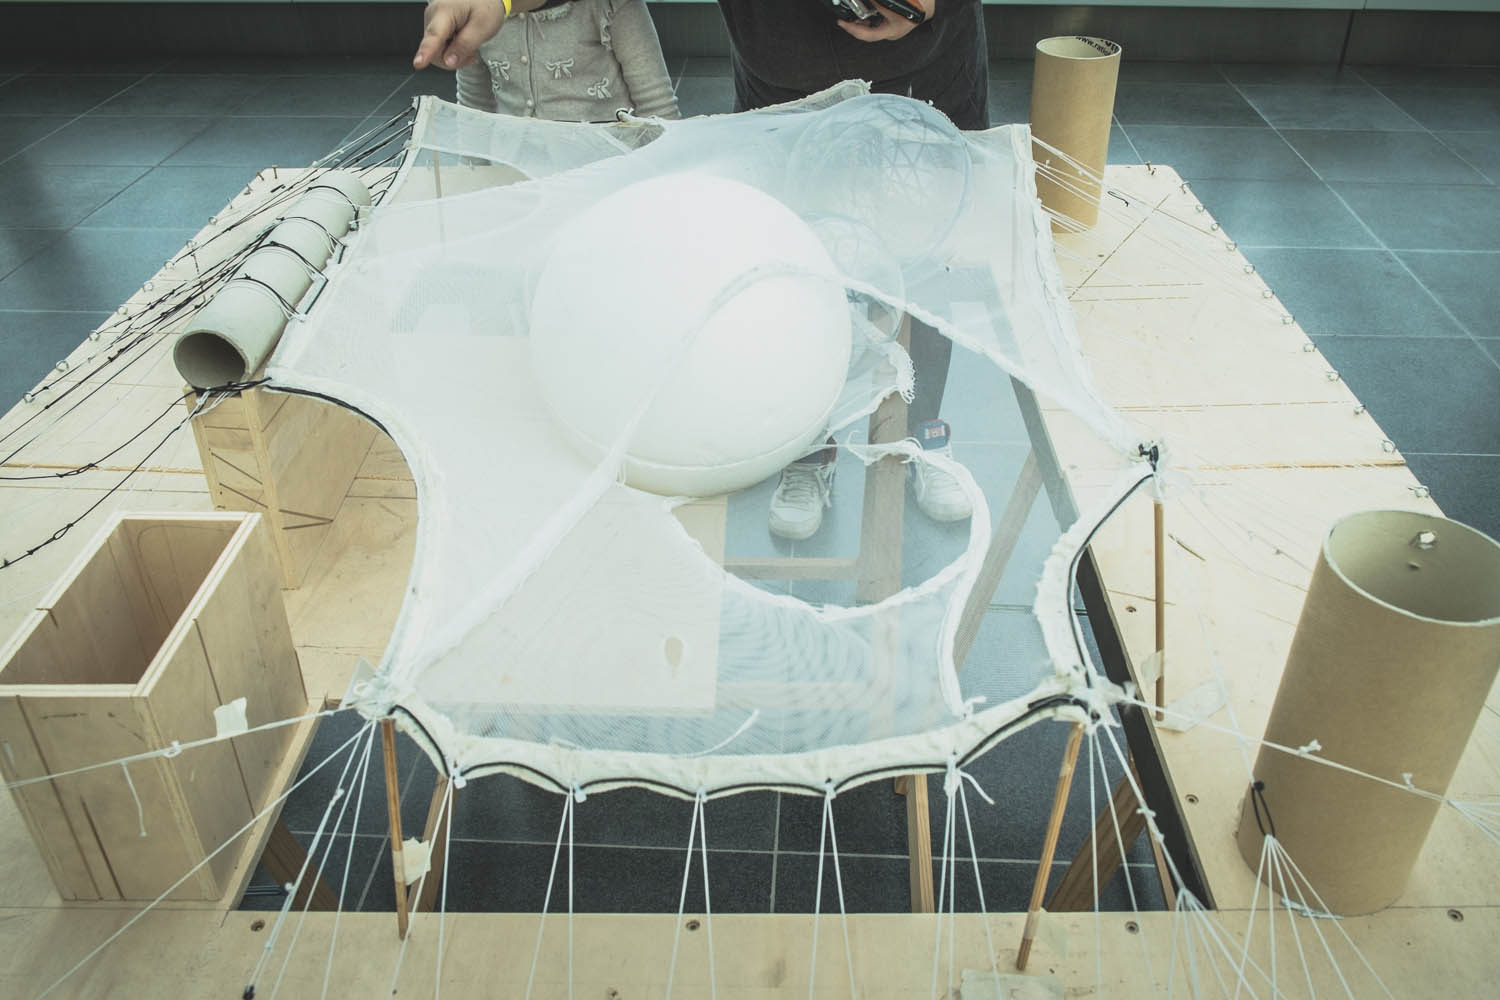 Study model, notice the sphere as key element to generate the space in between layers of net.